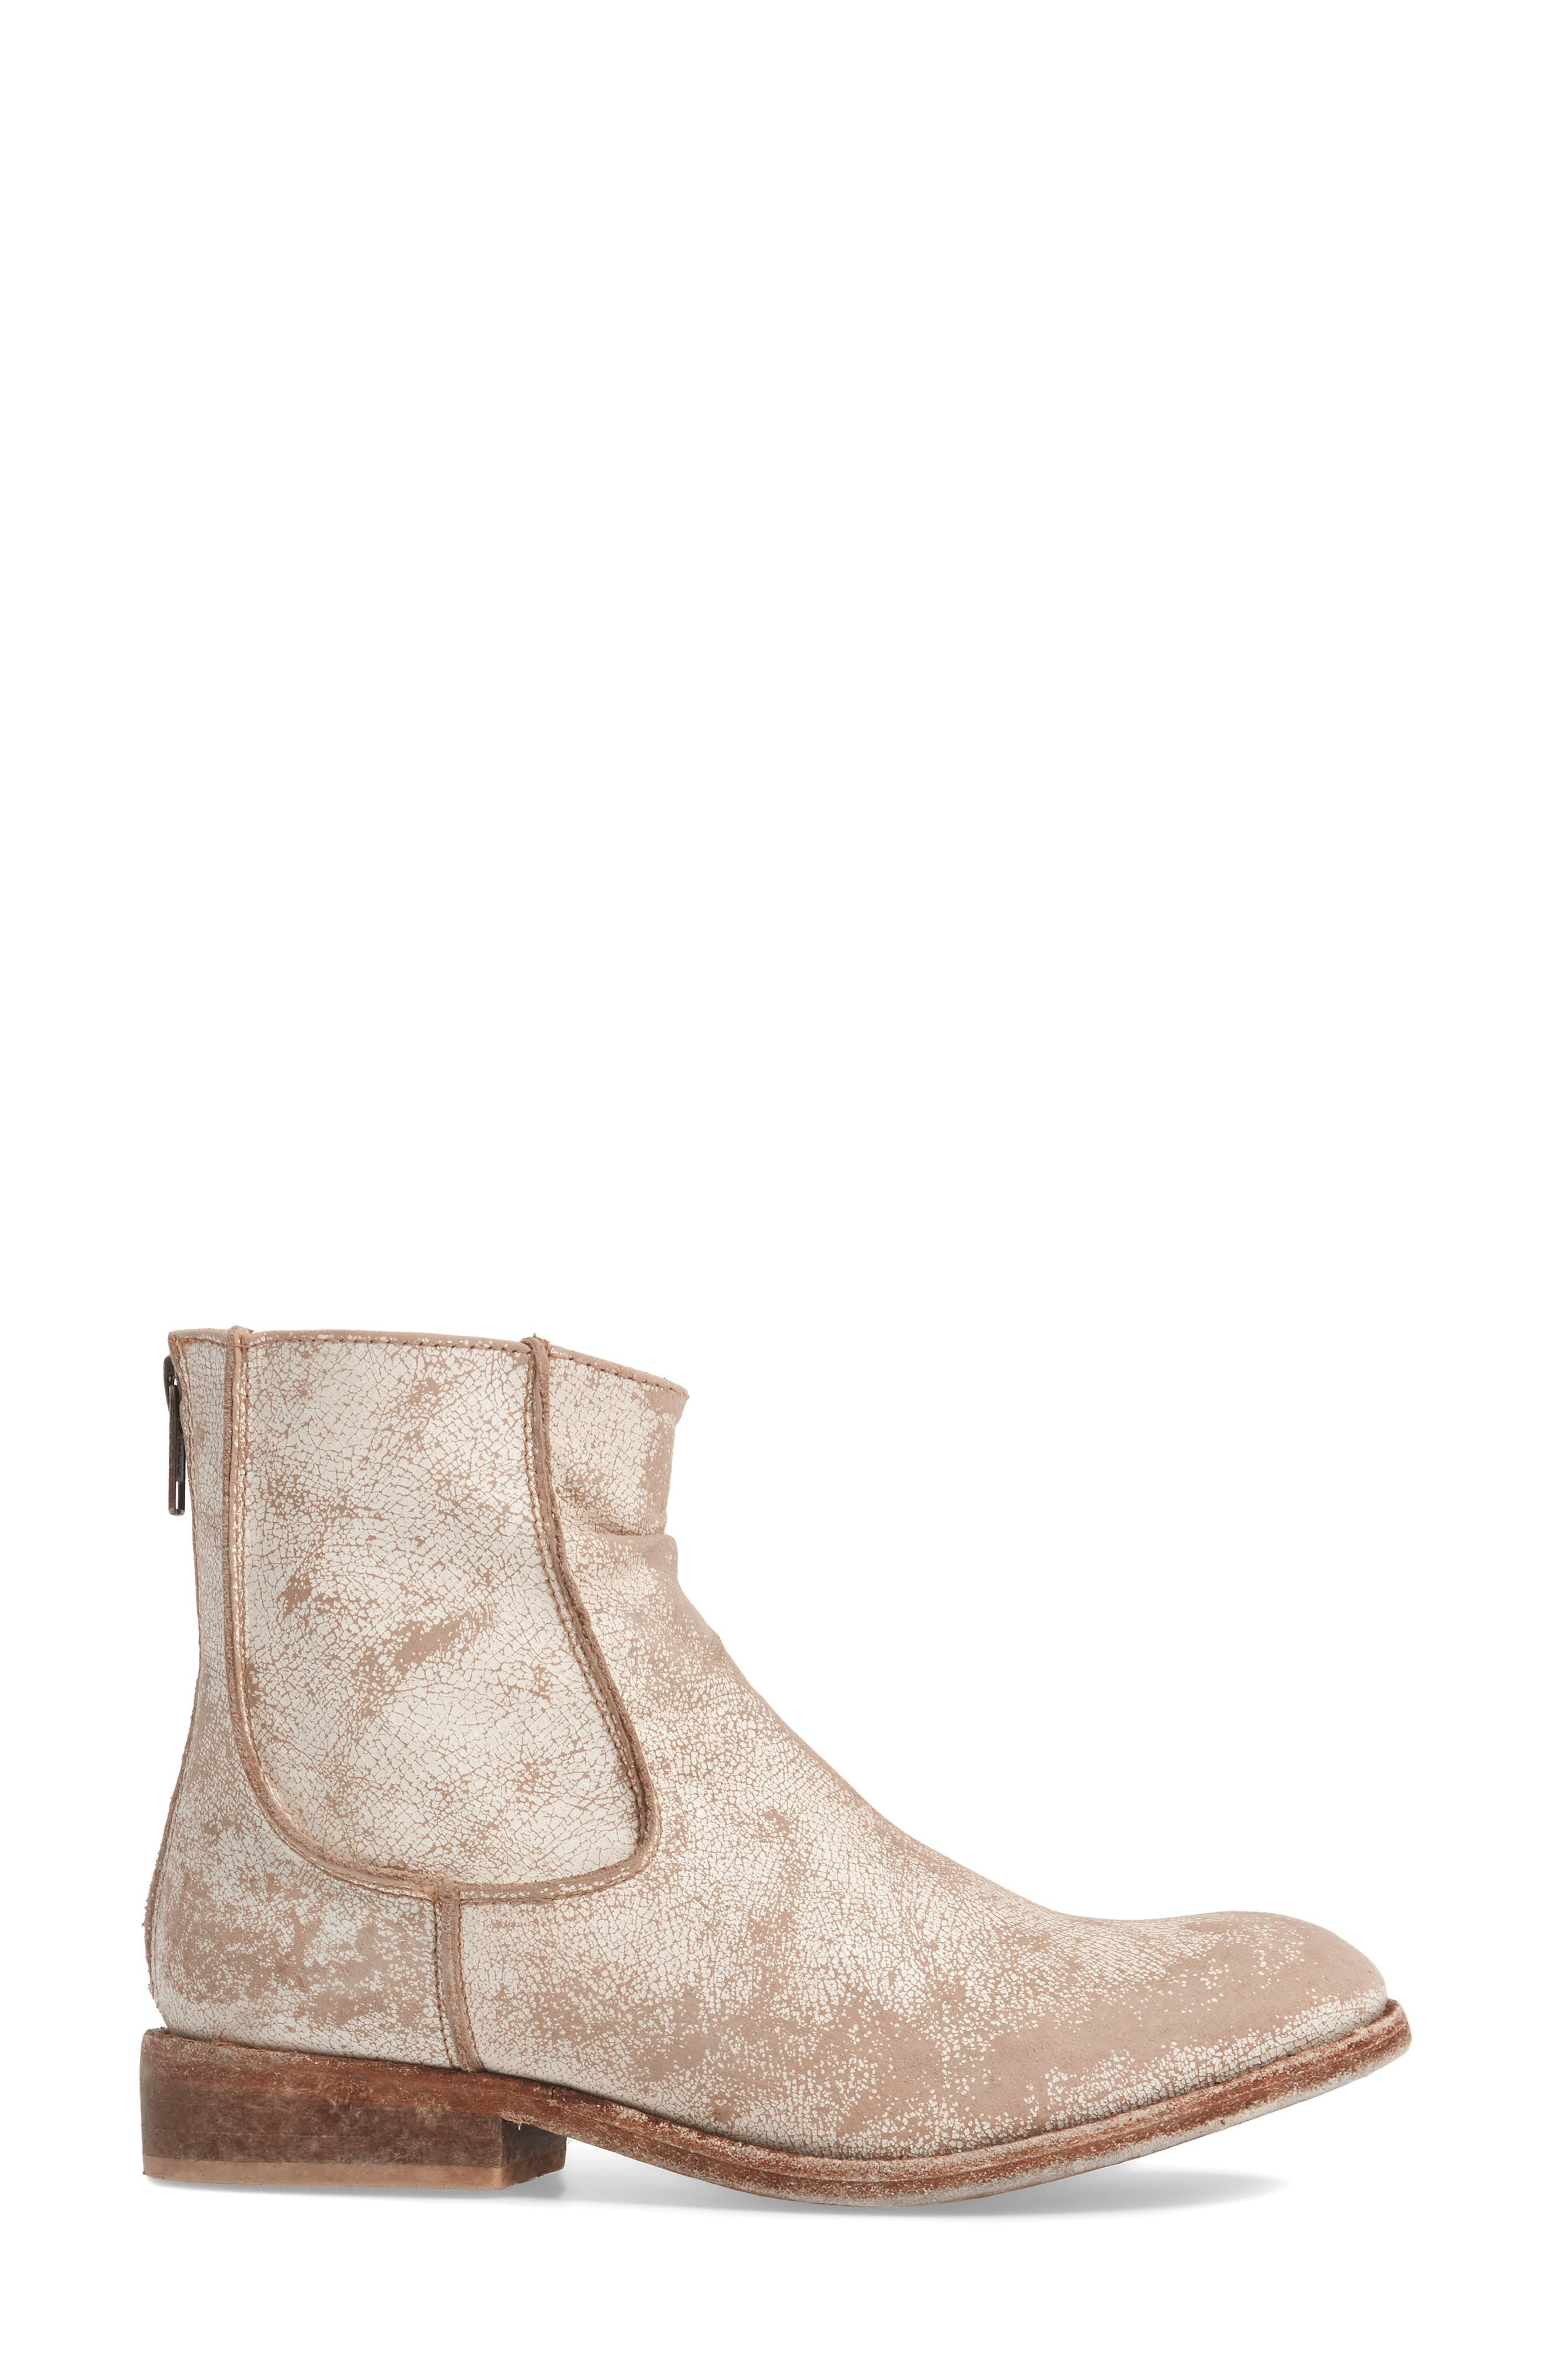 'Gerald' Distressed Bootie,                             Alternate thumbnail 8, color,